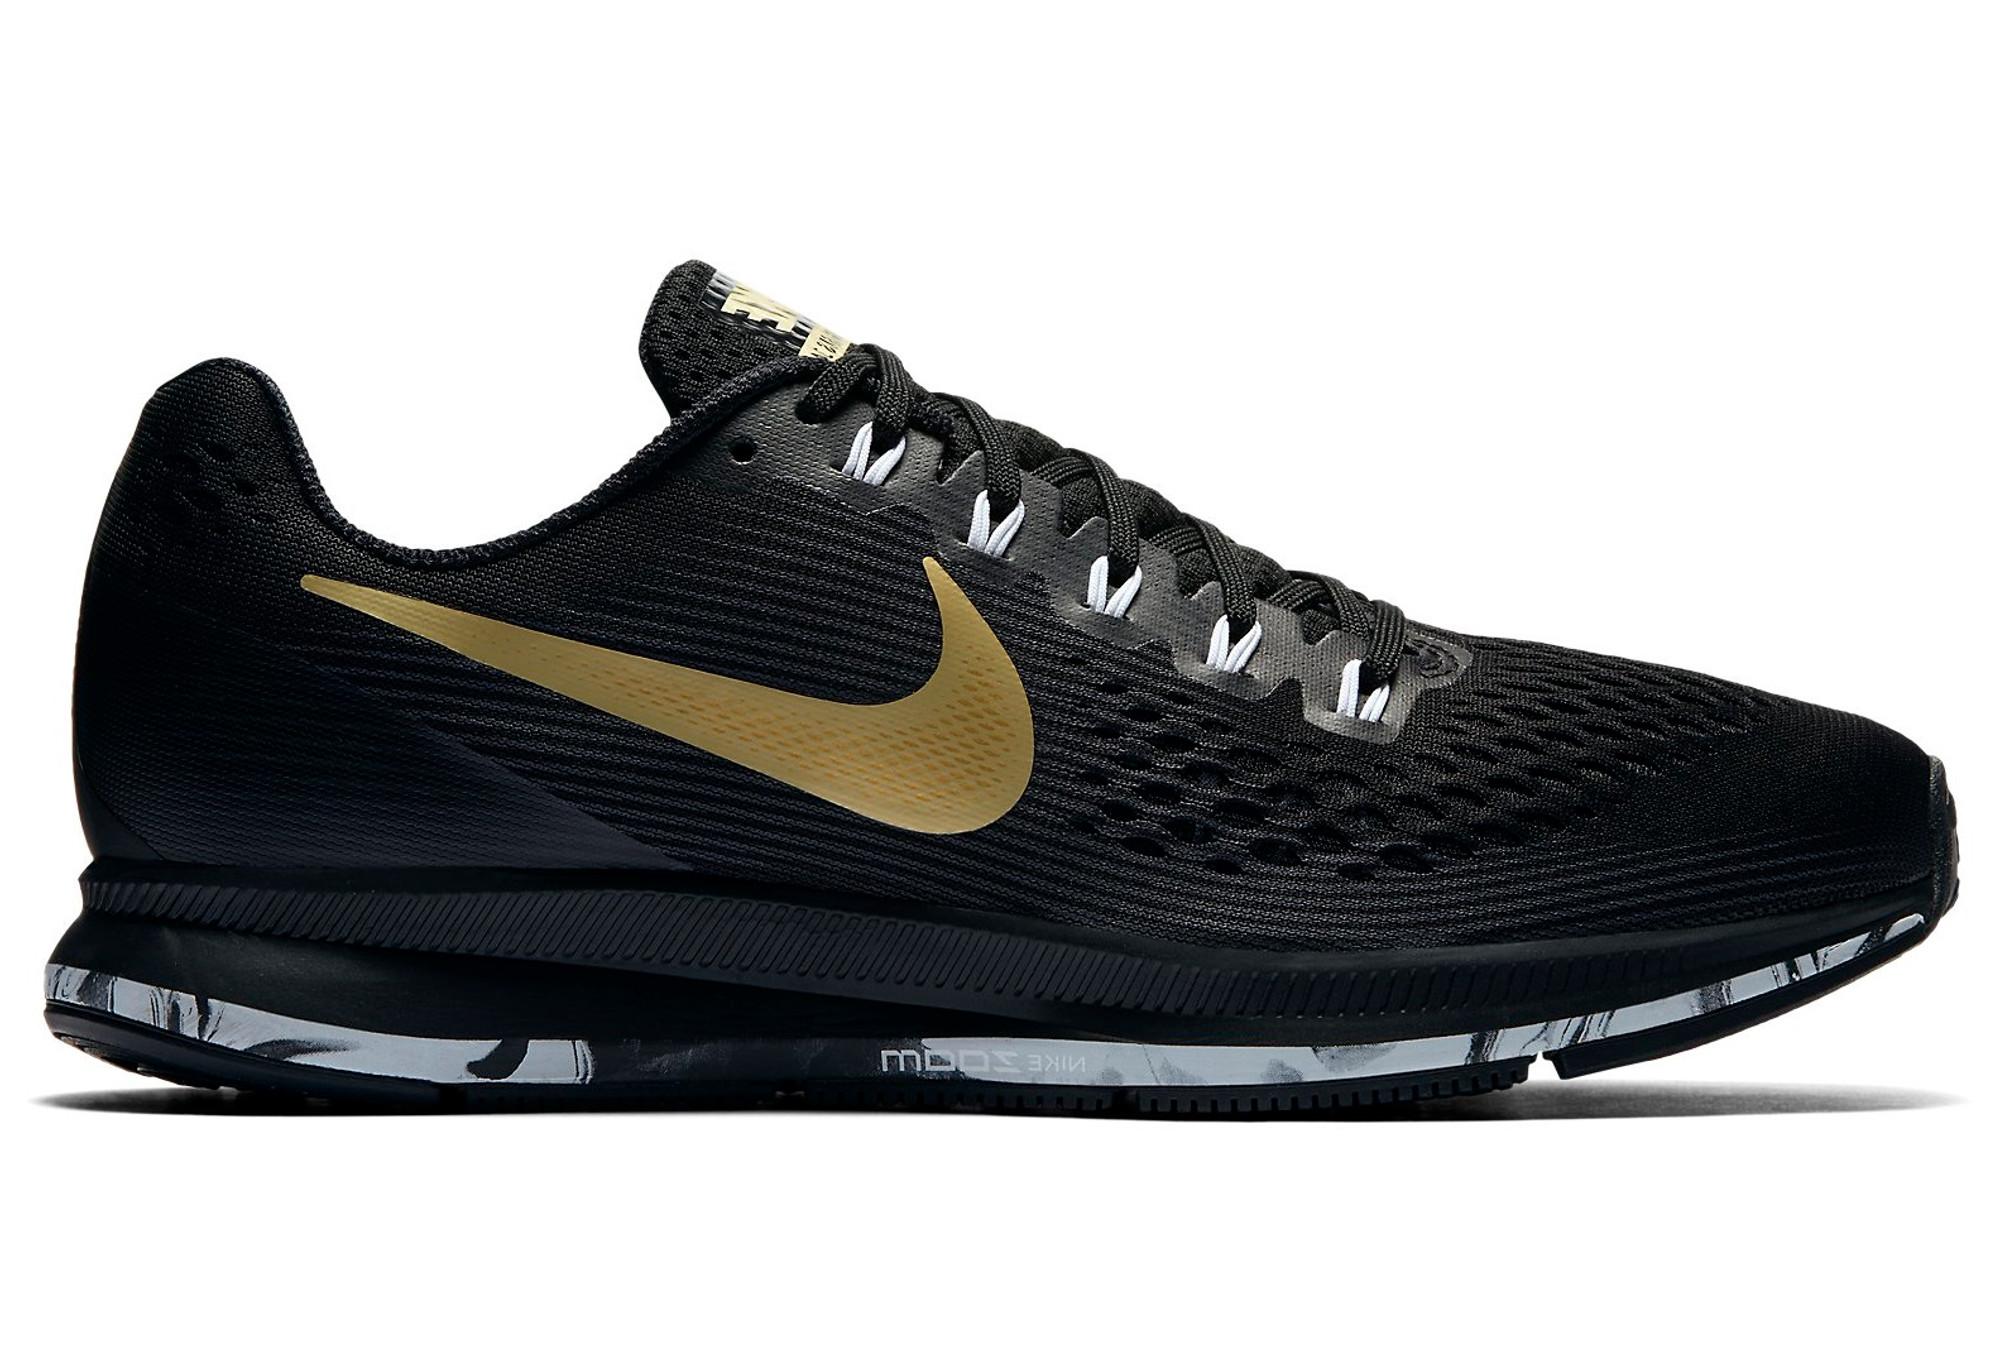 new styles 1e2b6 d5412 Chaussures de Running Femme Nike Air Zoom Pegasus 34 Medal Pack Noir   Or